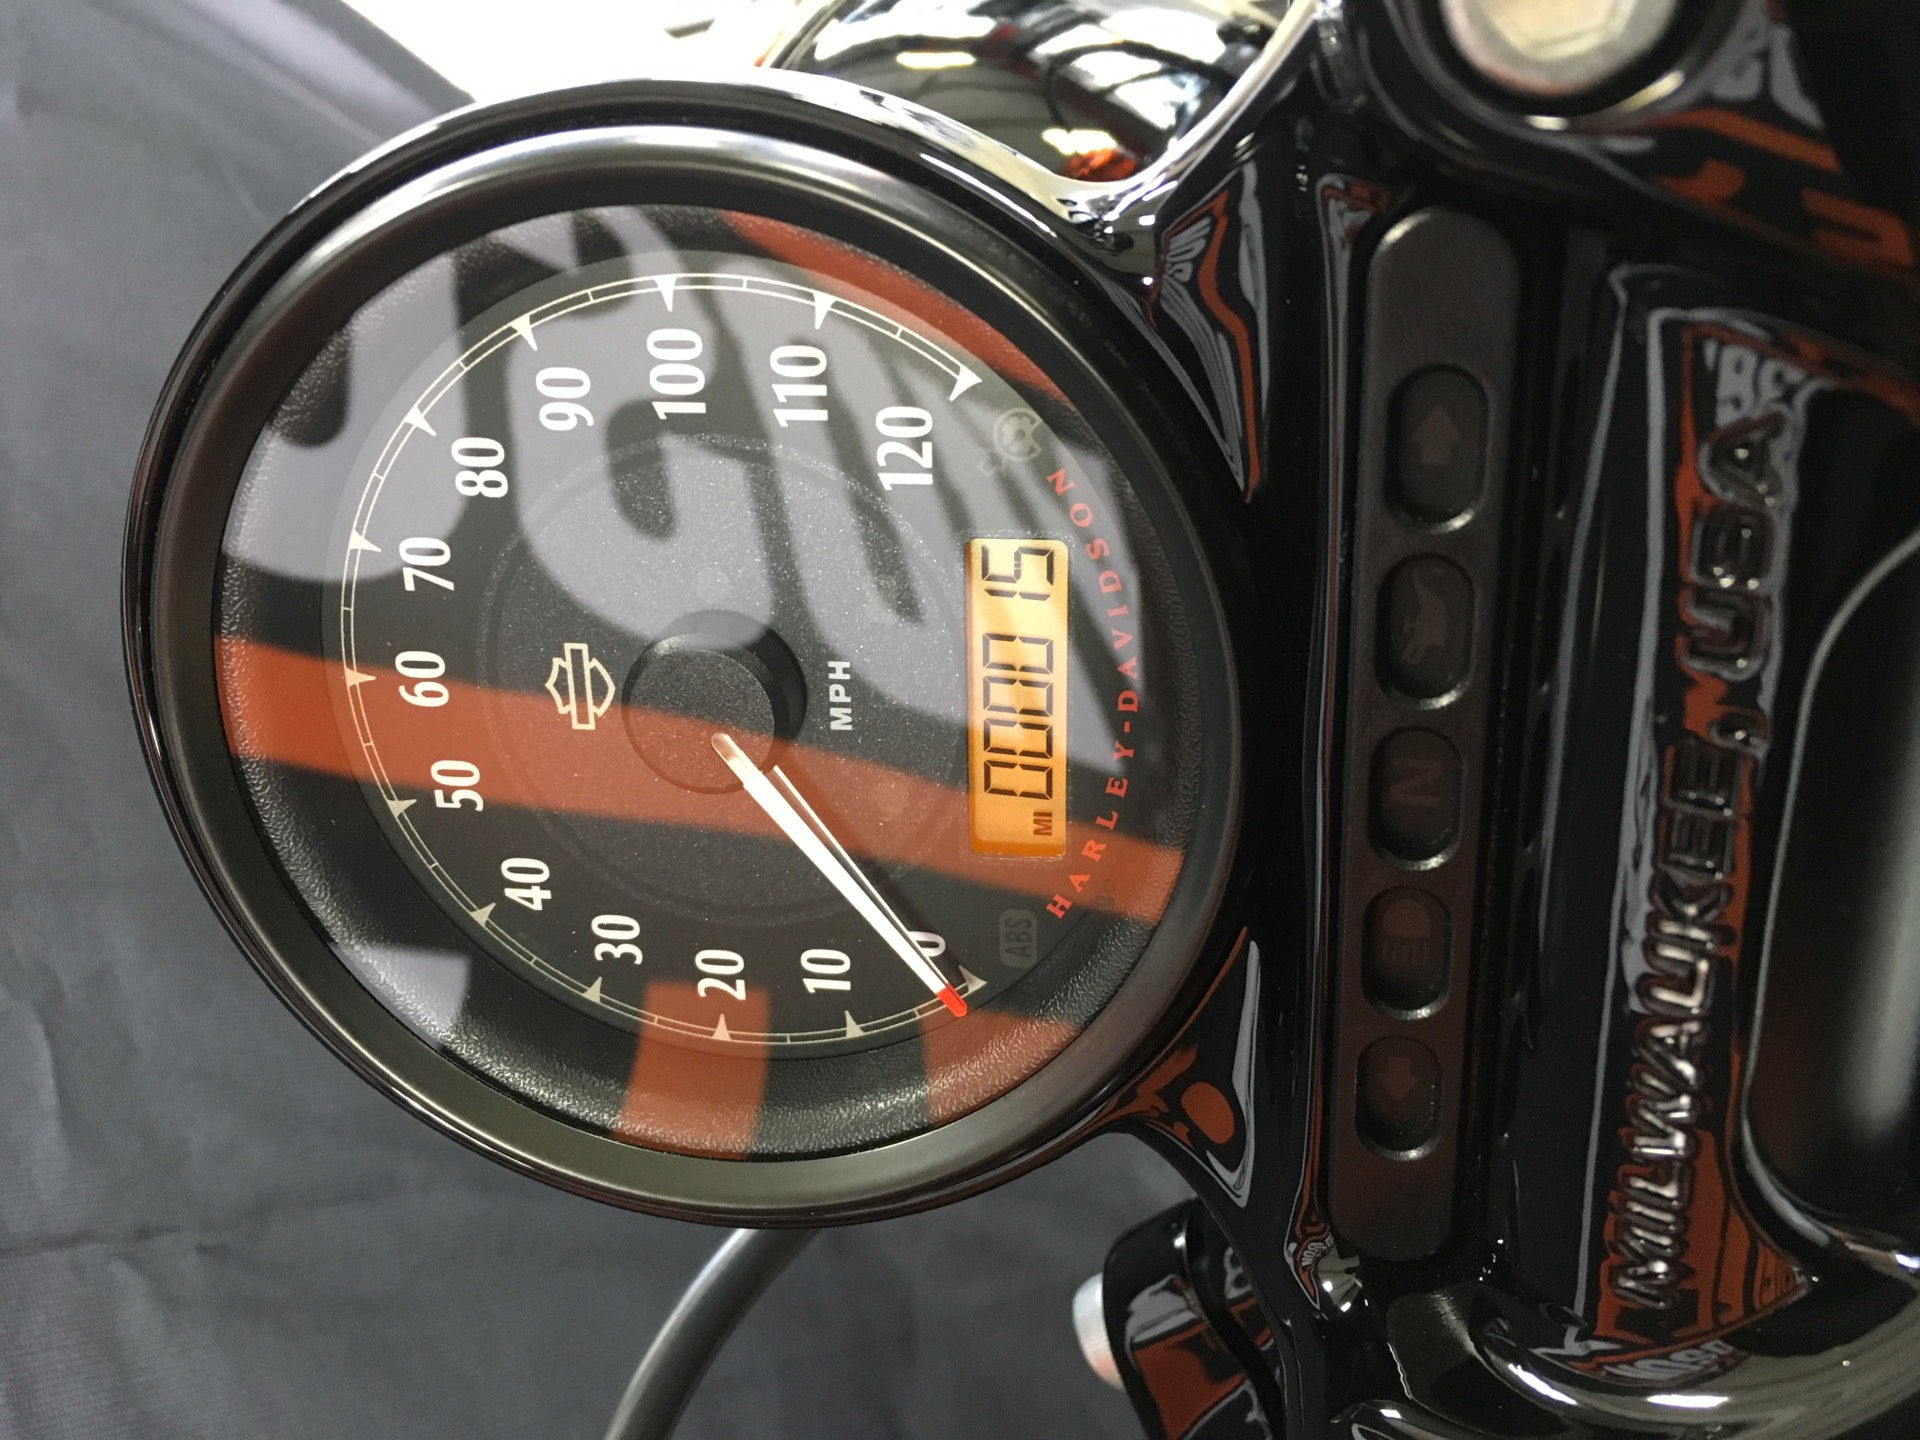 2020 Harley-Davidson XL1200X in Belmont, Ohio - Photo 6